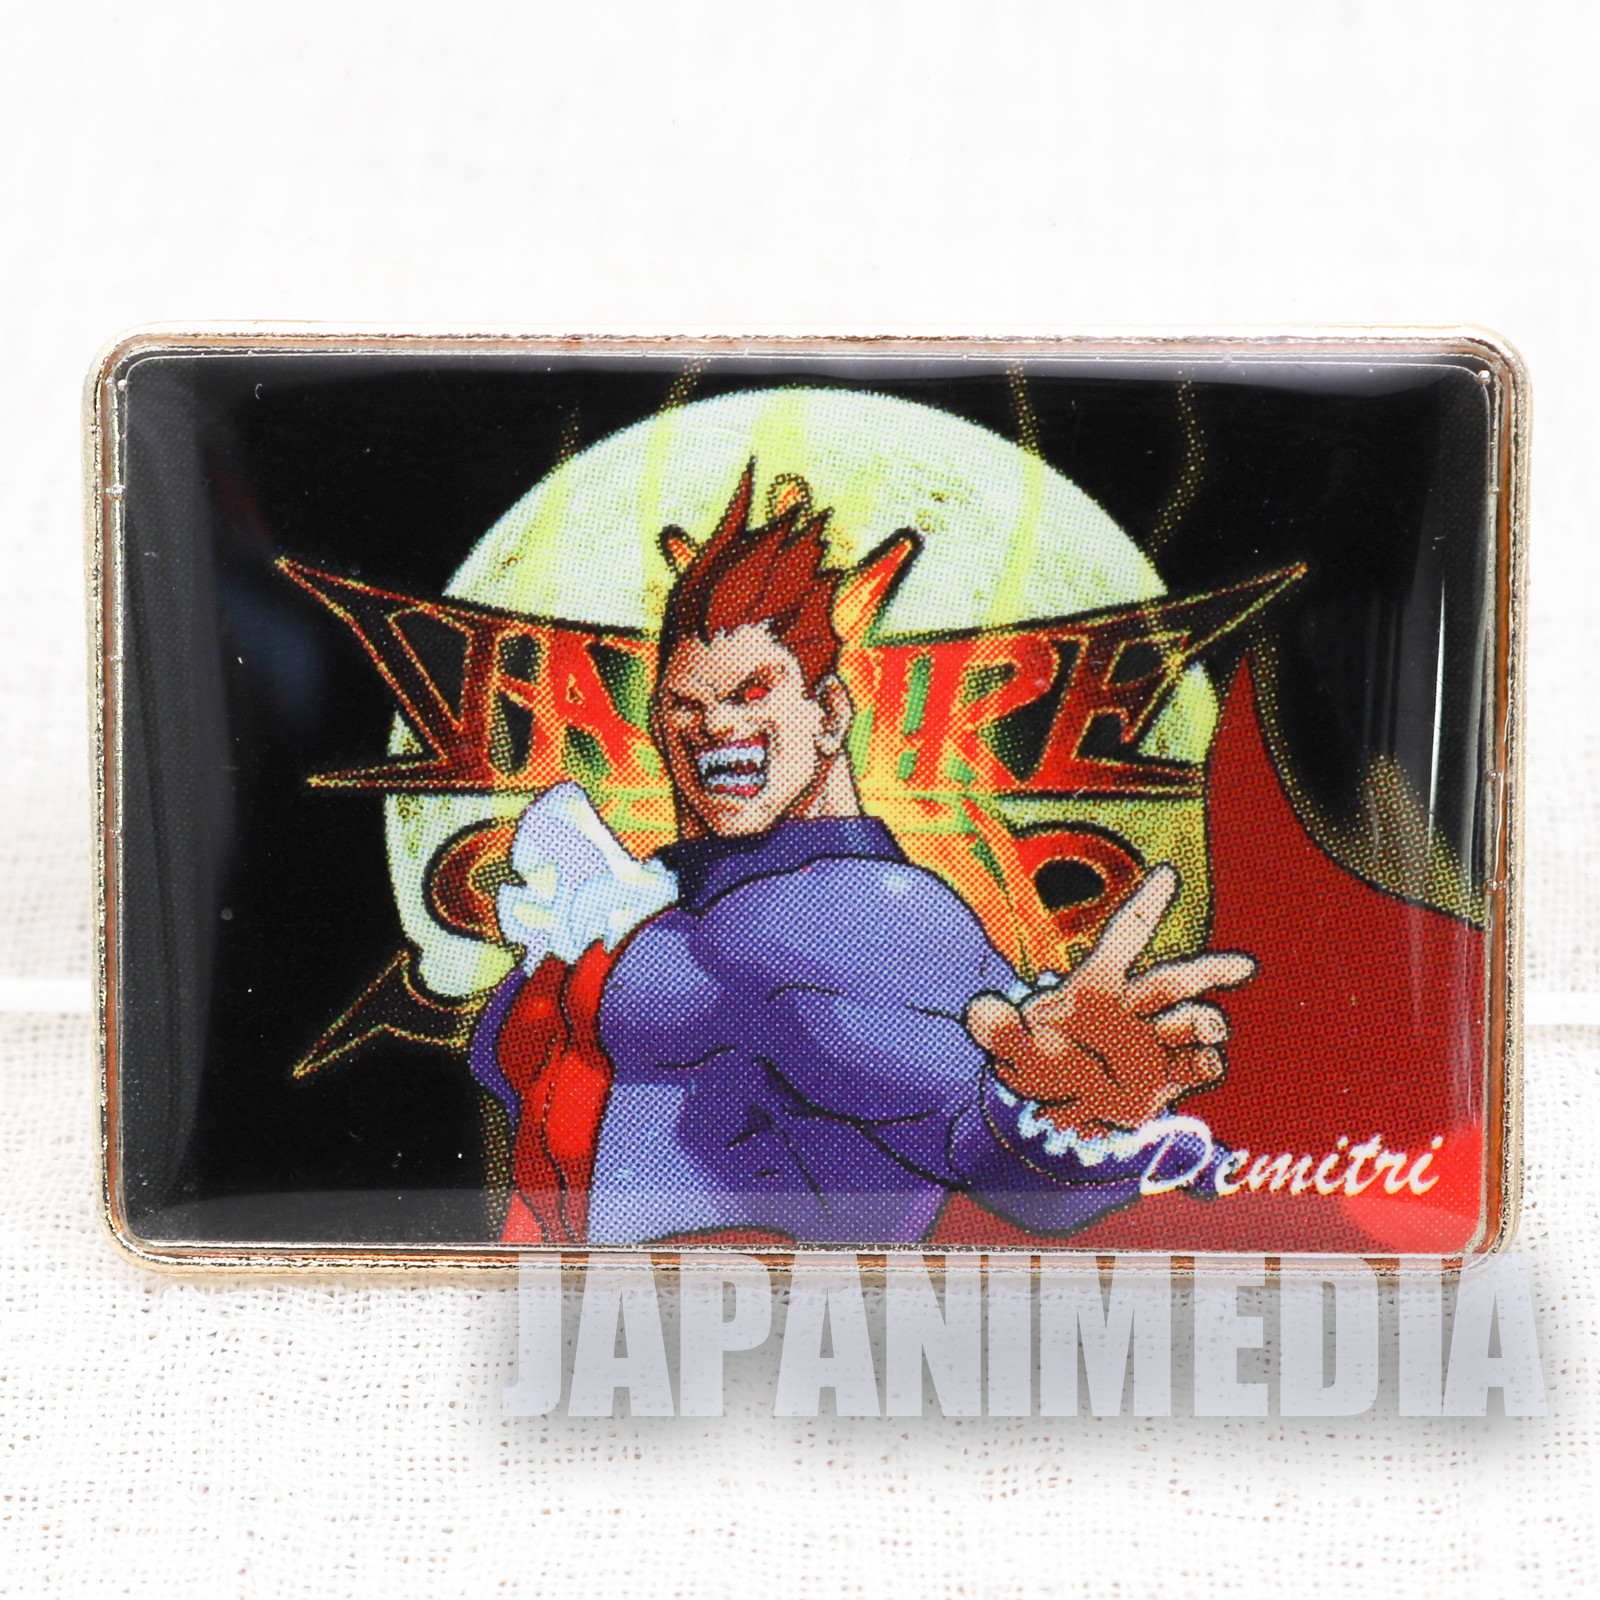 Darkstalkers (Vampire) Demitri Metal Pins Capcom Character JAPAN HUNTER SAVIOR